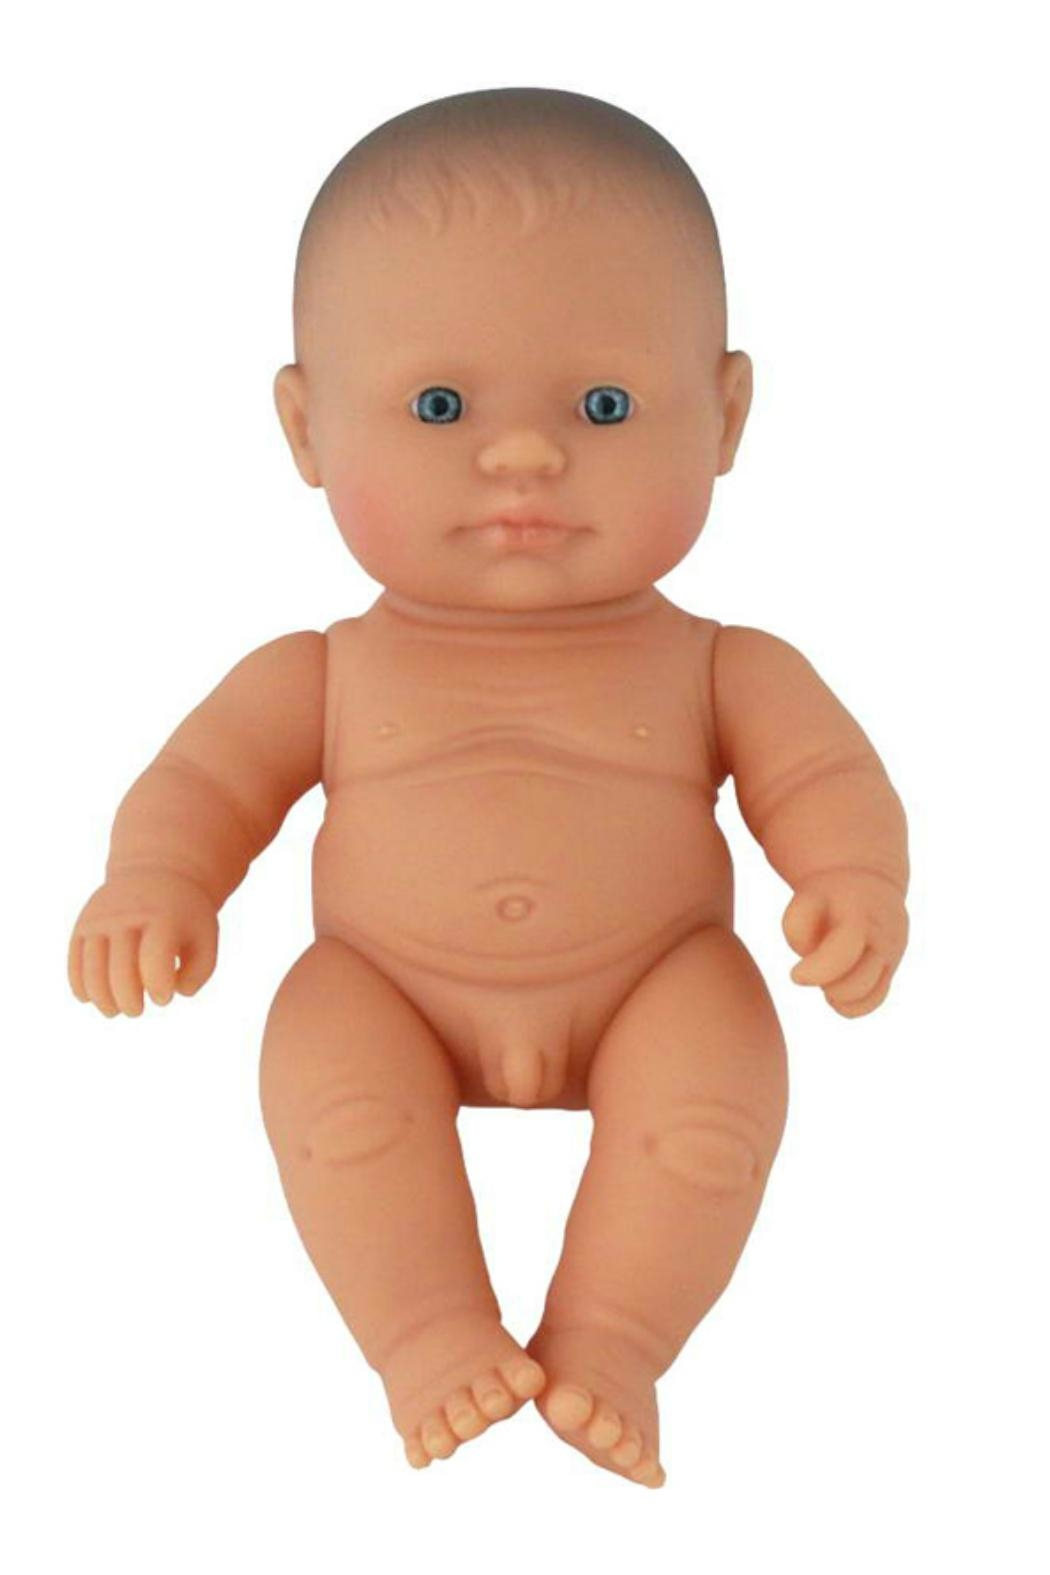 Miniland Baby Boy Doll - Main Image